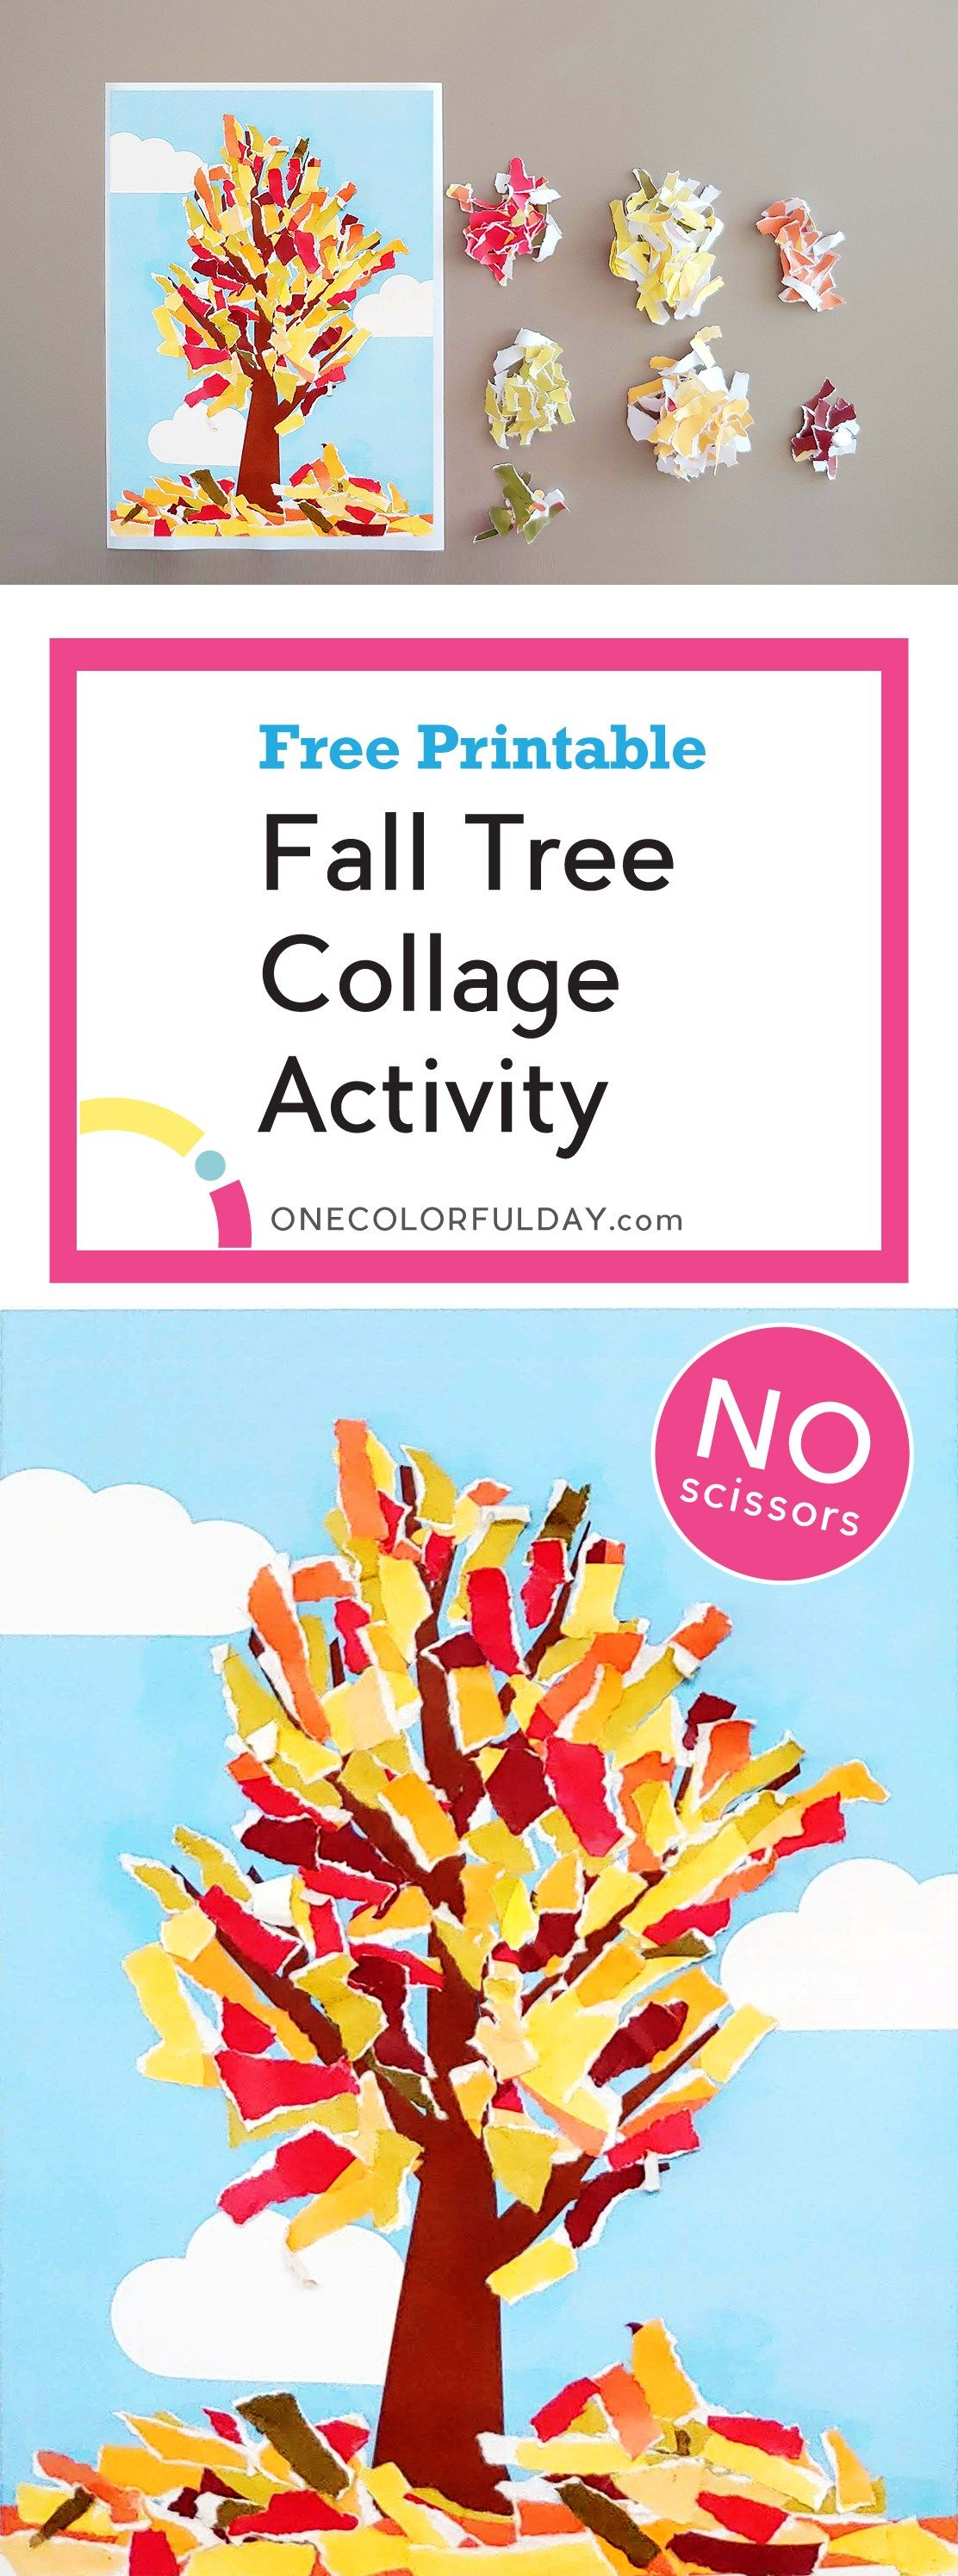 Free Printable Fall Tree Collage Activity